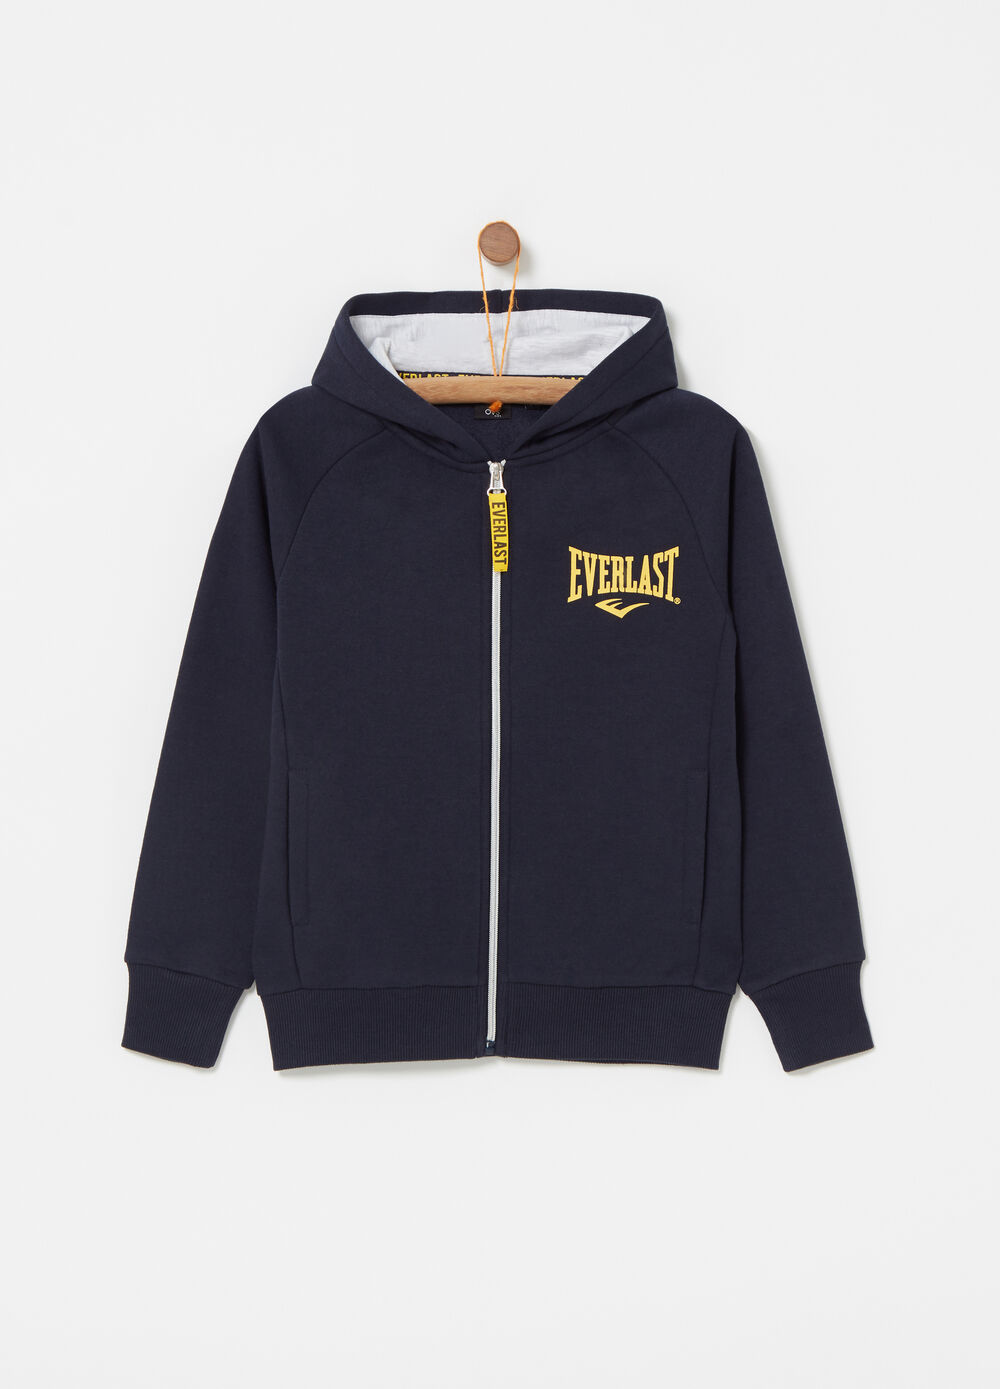 Heavy full-zip sweatshirt with Everlast print